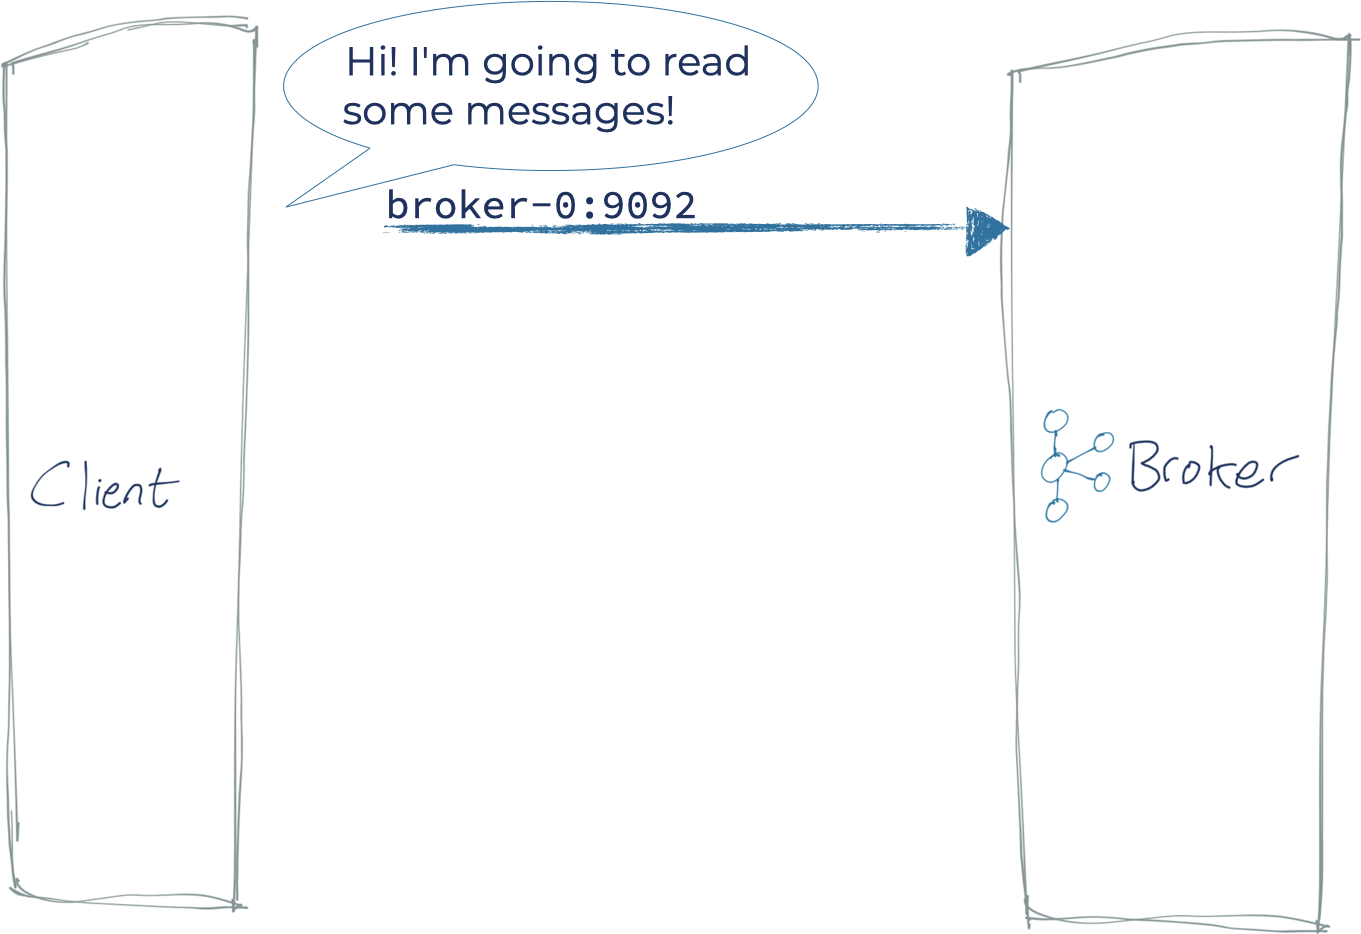 Client ➝ Kafka Broker: Hi! I'm going to read some messages!